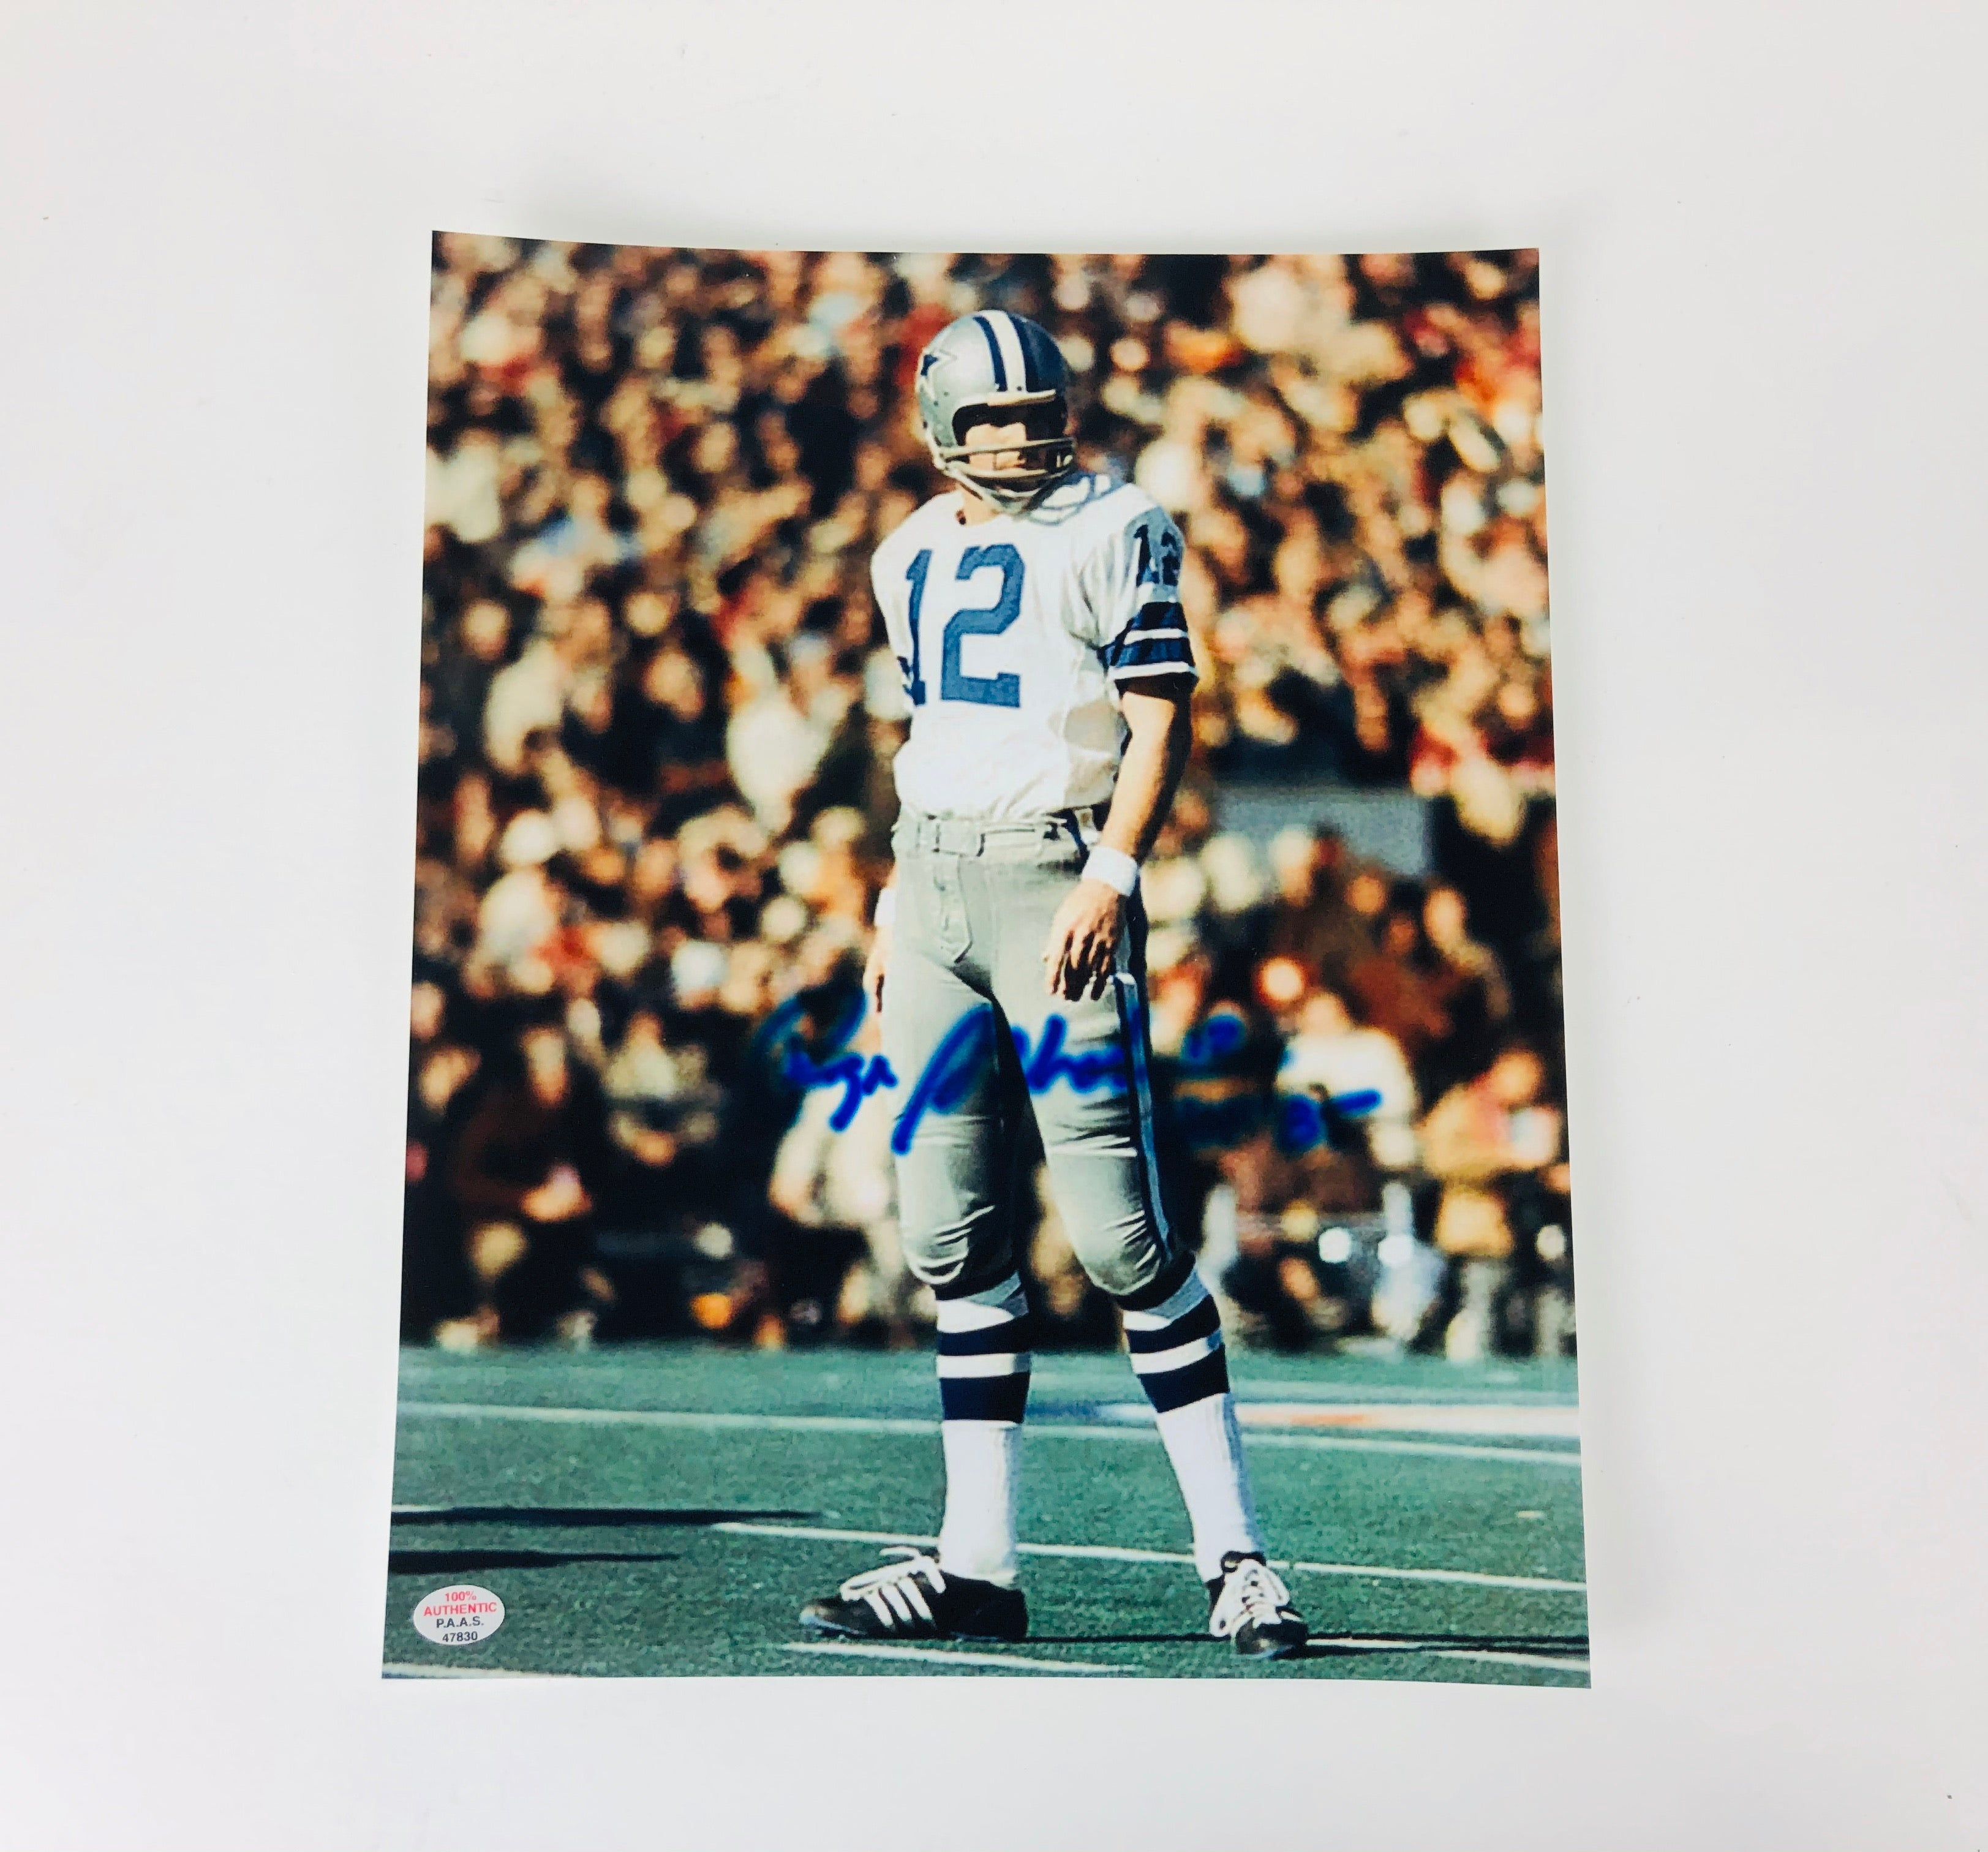 Roger Staubach Autographed 8x10 Photo With COA